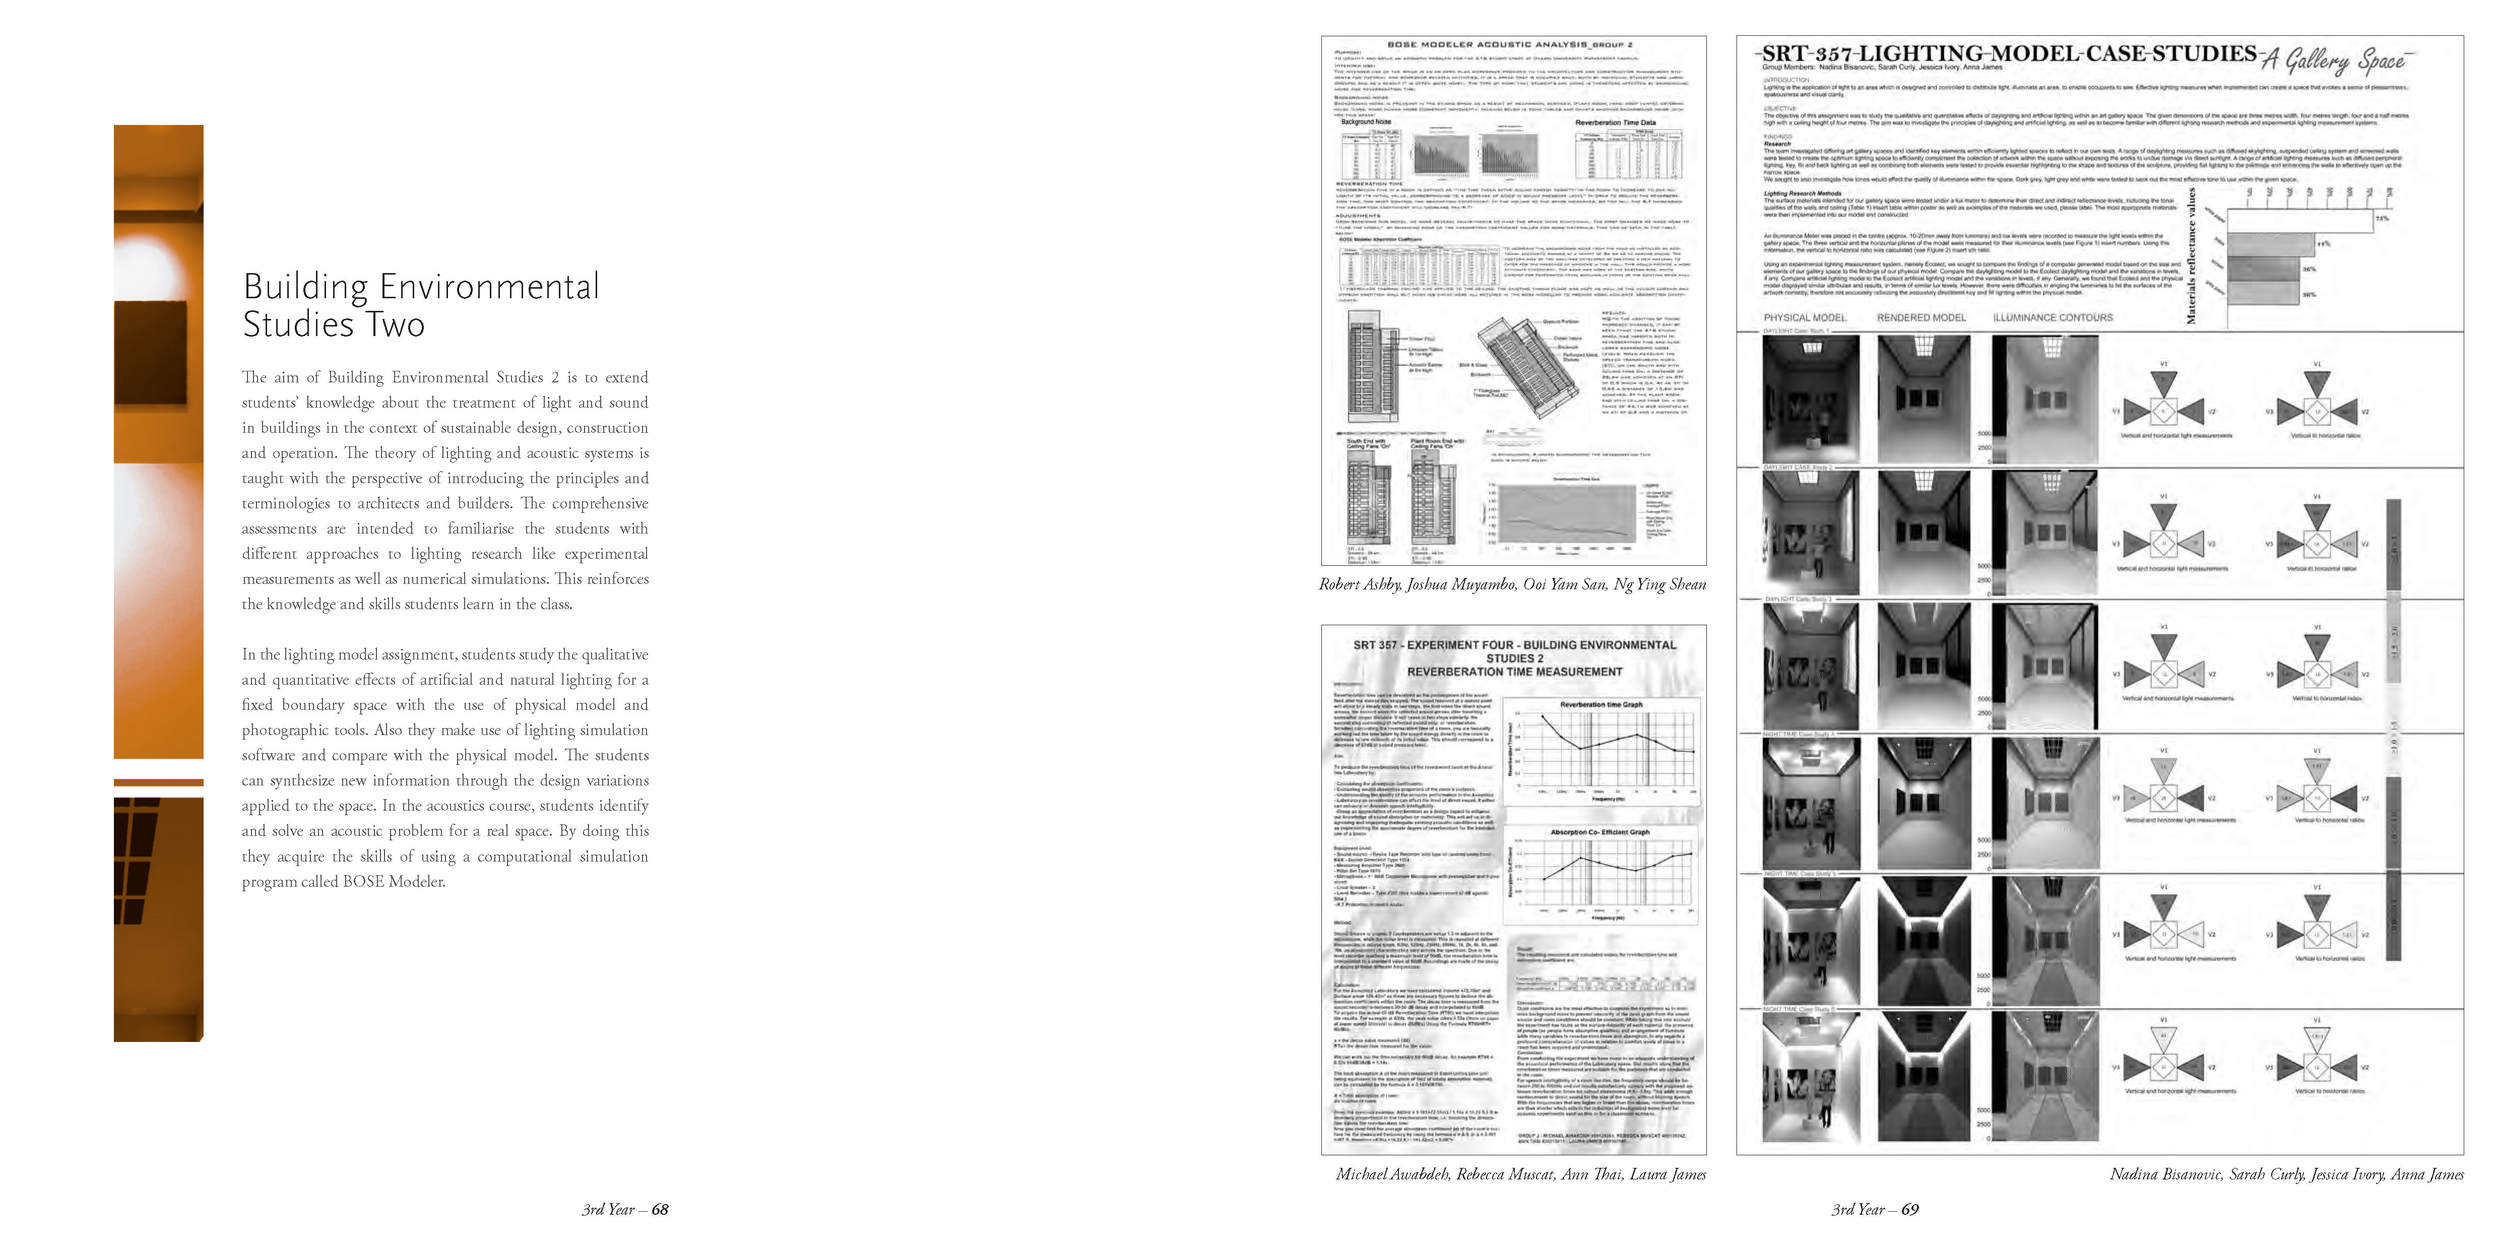 2007 Journal_Complete_Cover - web_Page_36.jpg